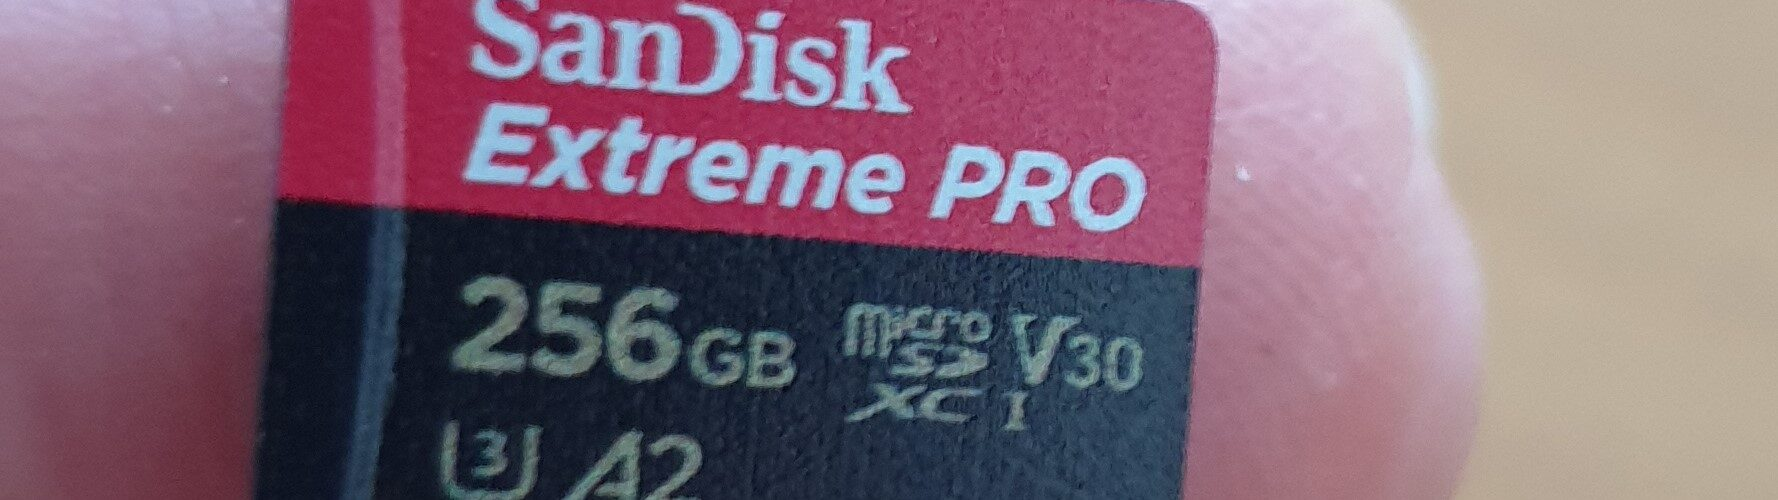 SanDisk 256GB microSD Extreme Pro geheugenkaart U3 A2 170MB/s